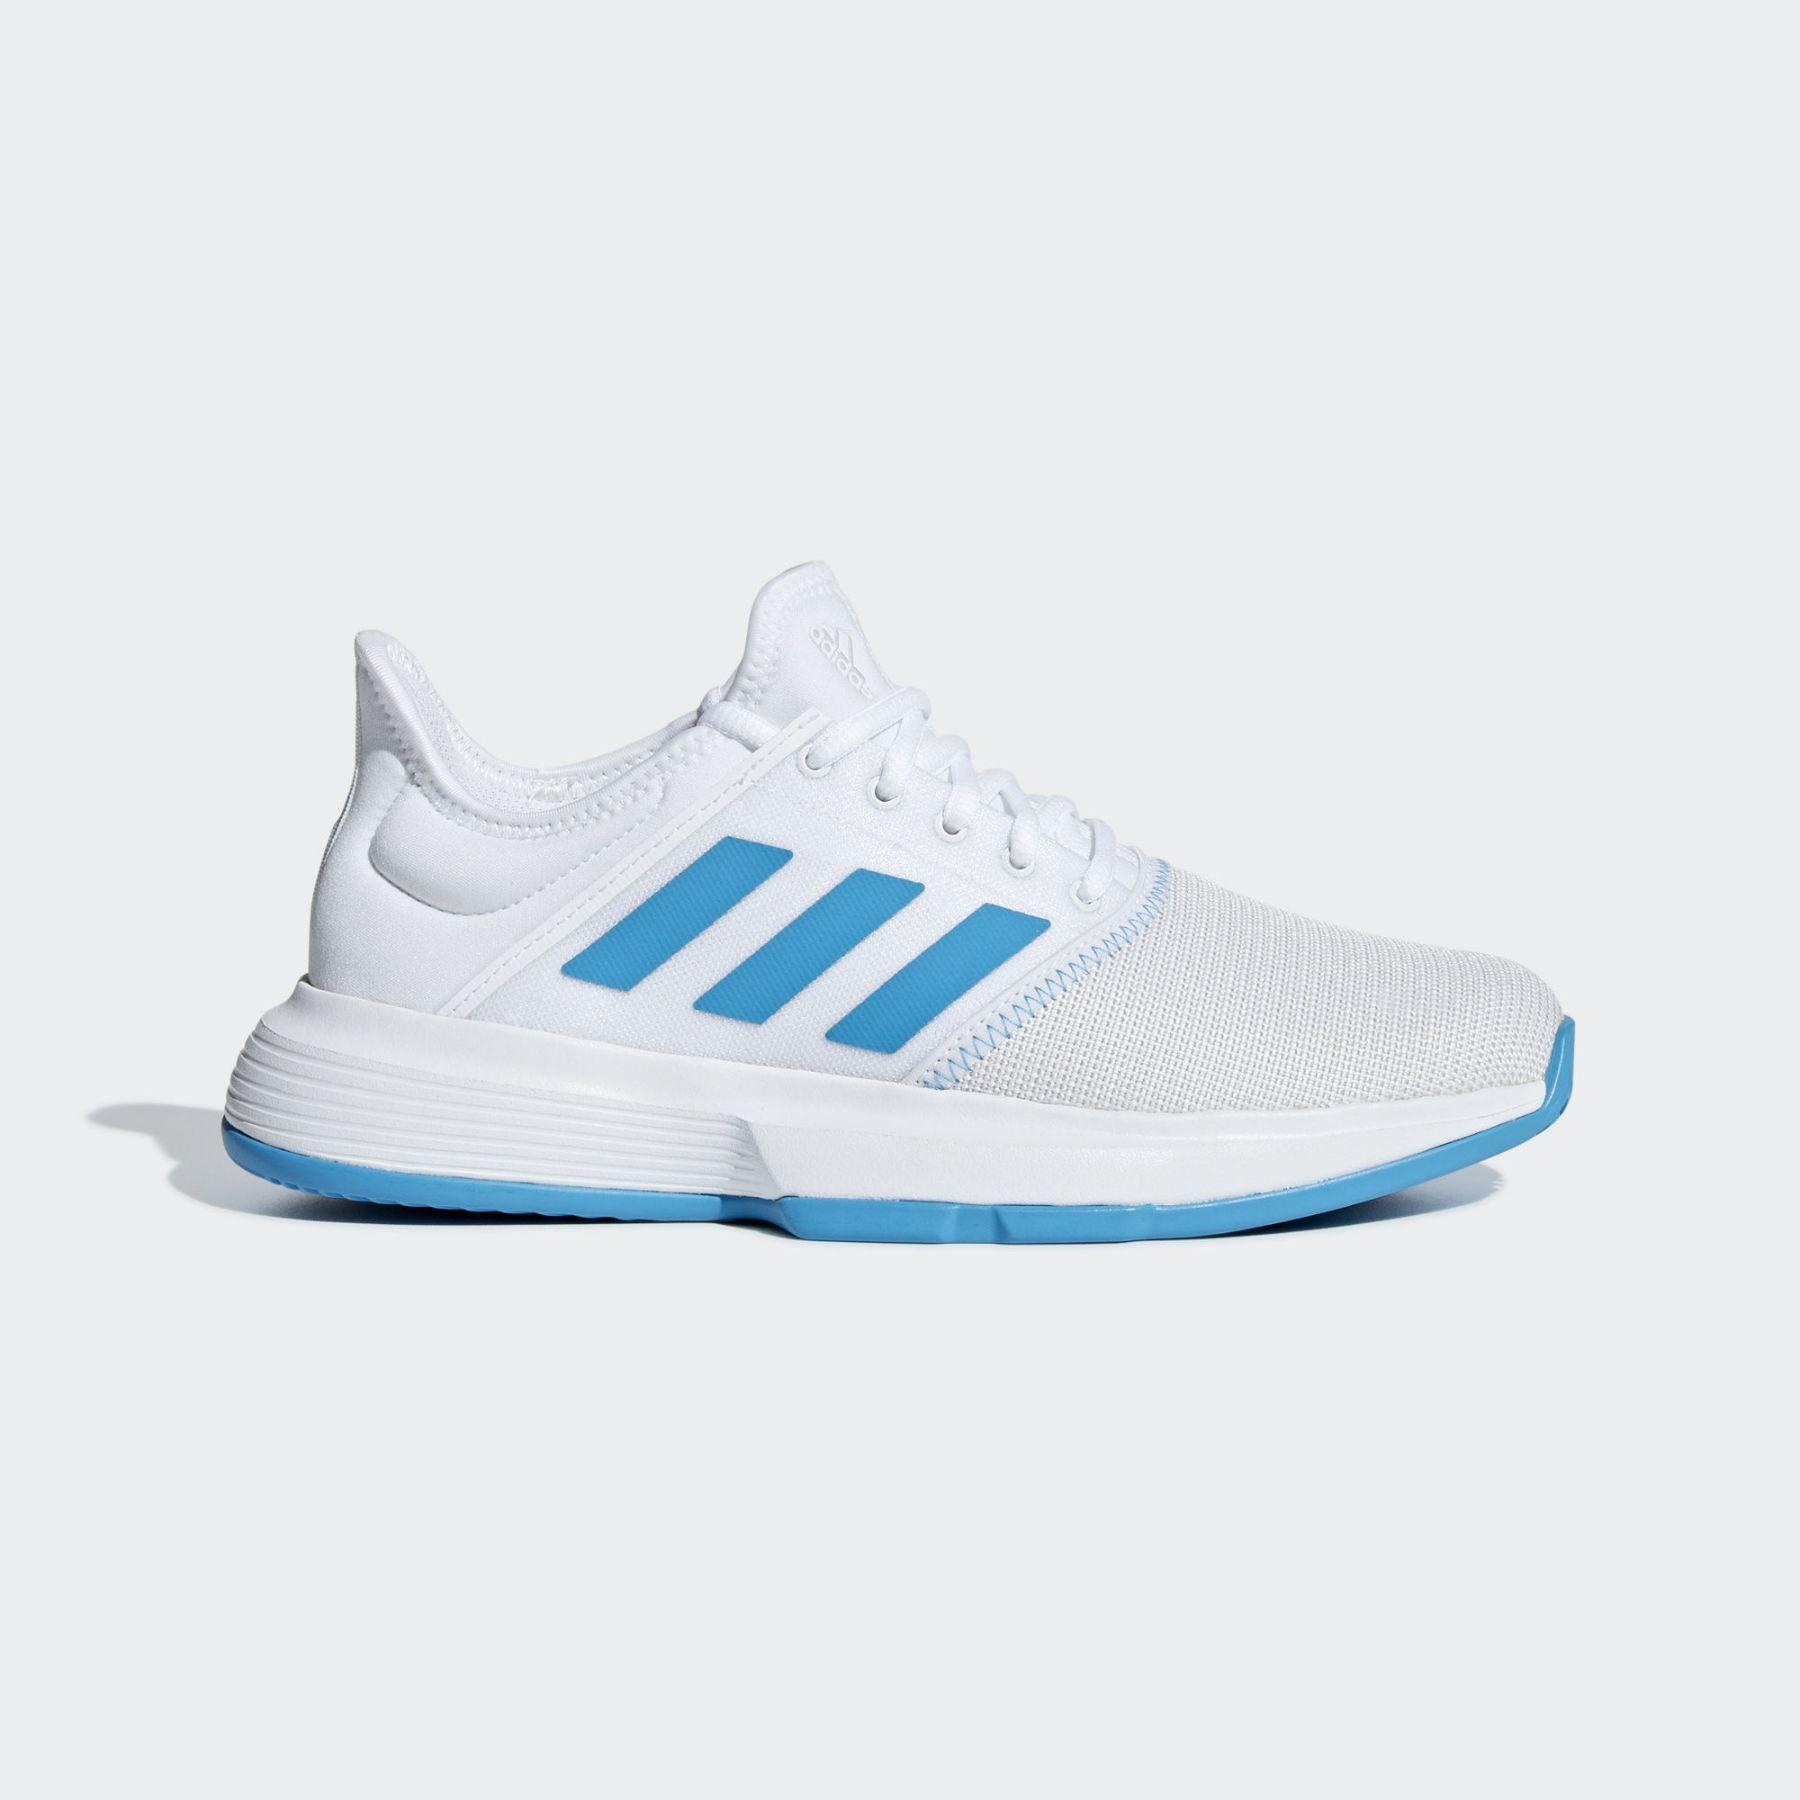 Adidas Gamecourt Shoes Women Cg6367 By Lazada Retail Adidas Official Store.